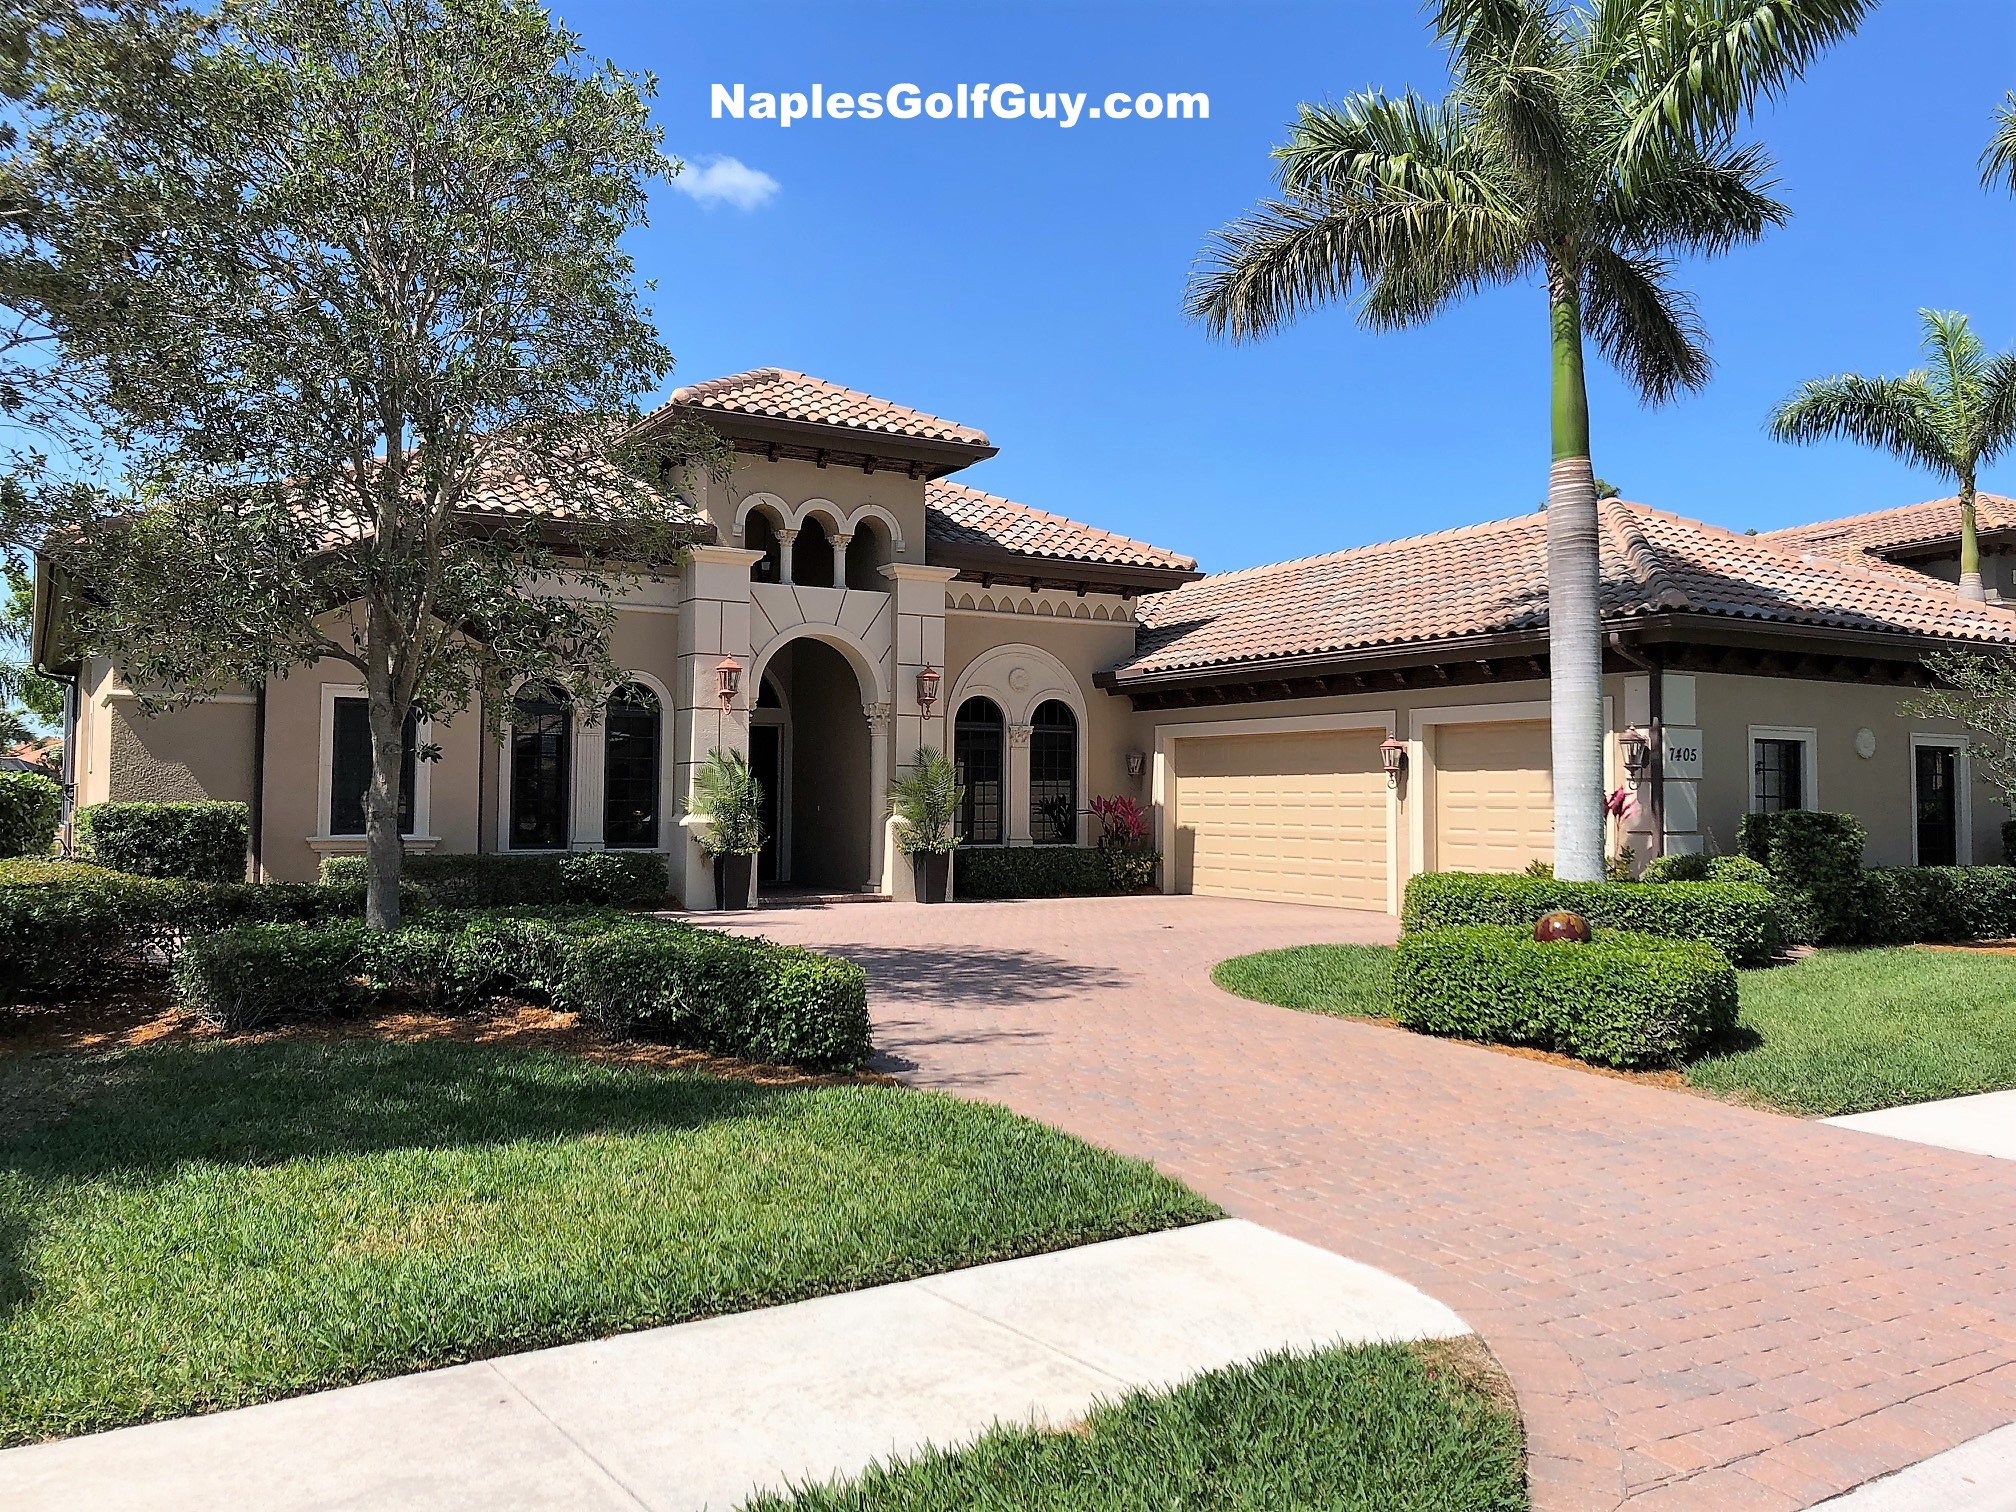 Naples Weekly Property Sales Report For Jan. 29th